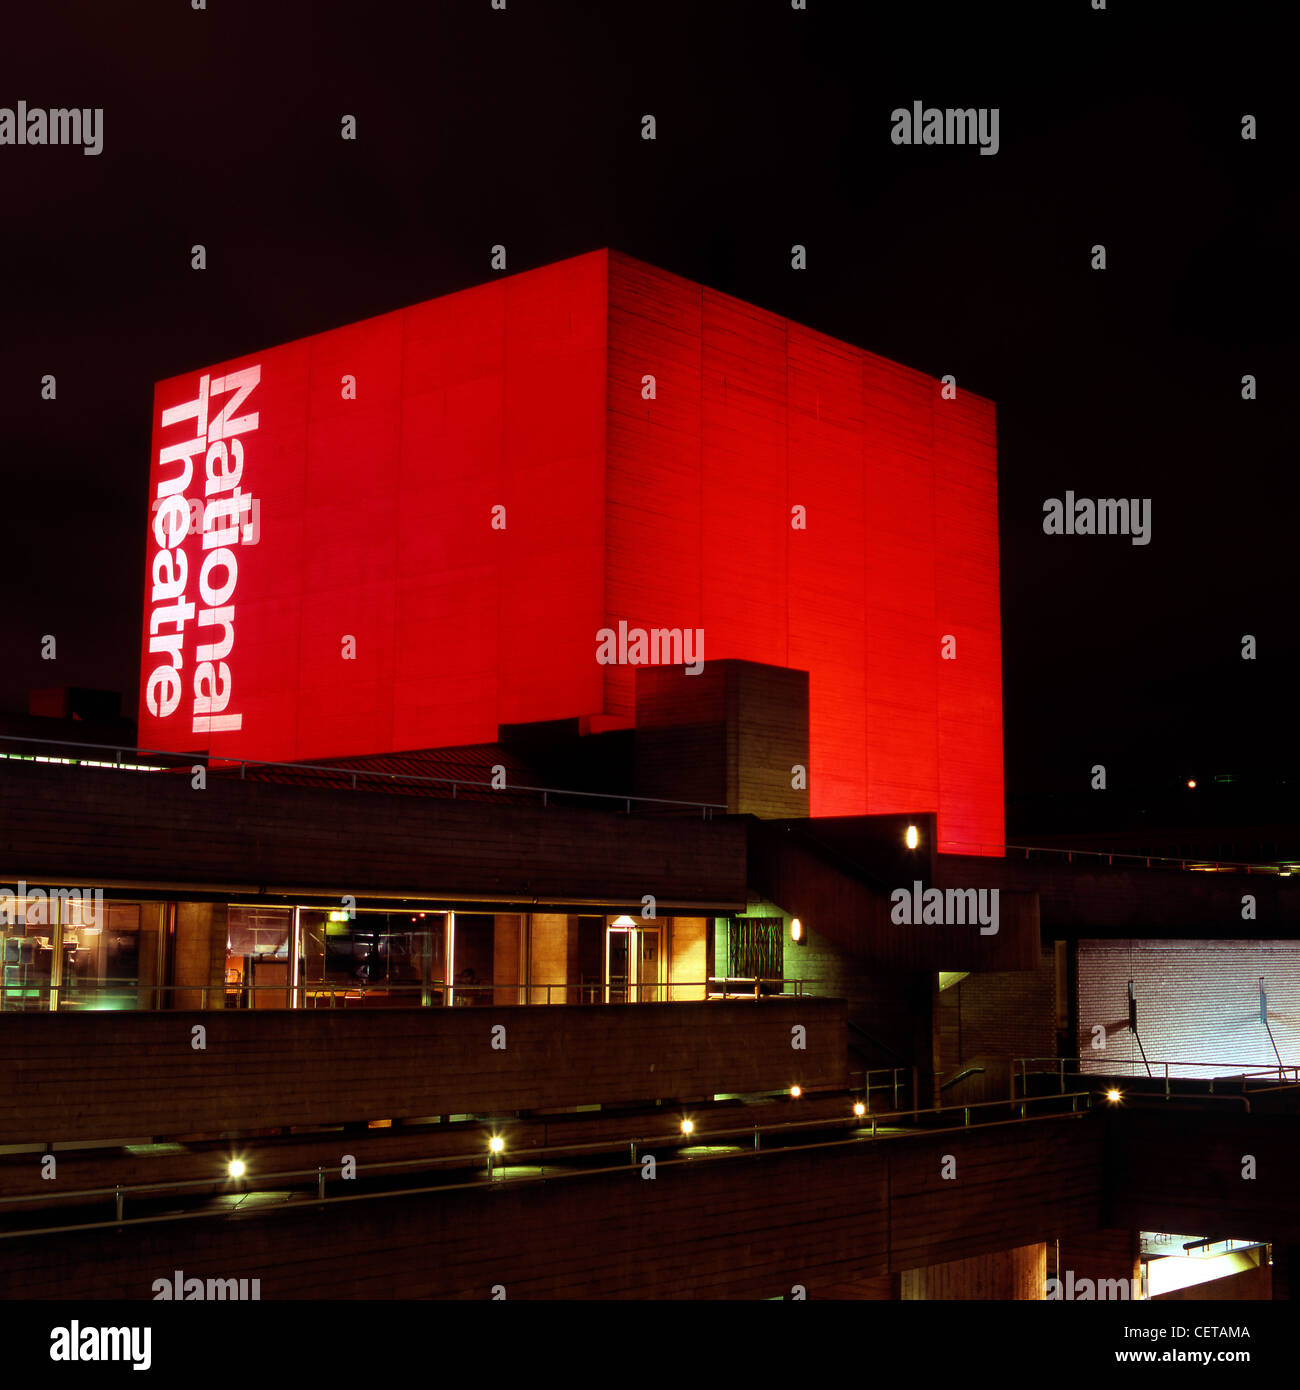 The National Film Theatre Flytower illuminated red. - Stock Image